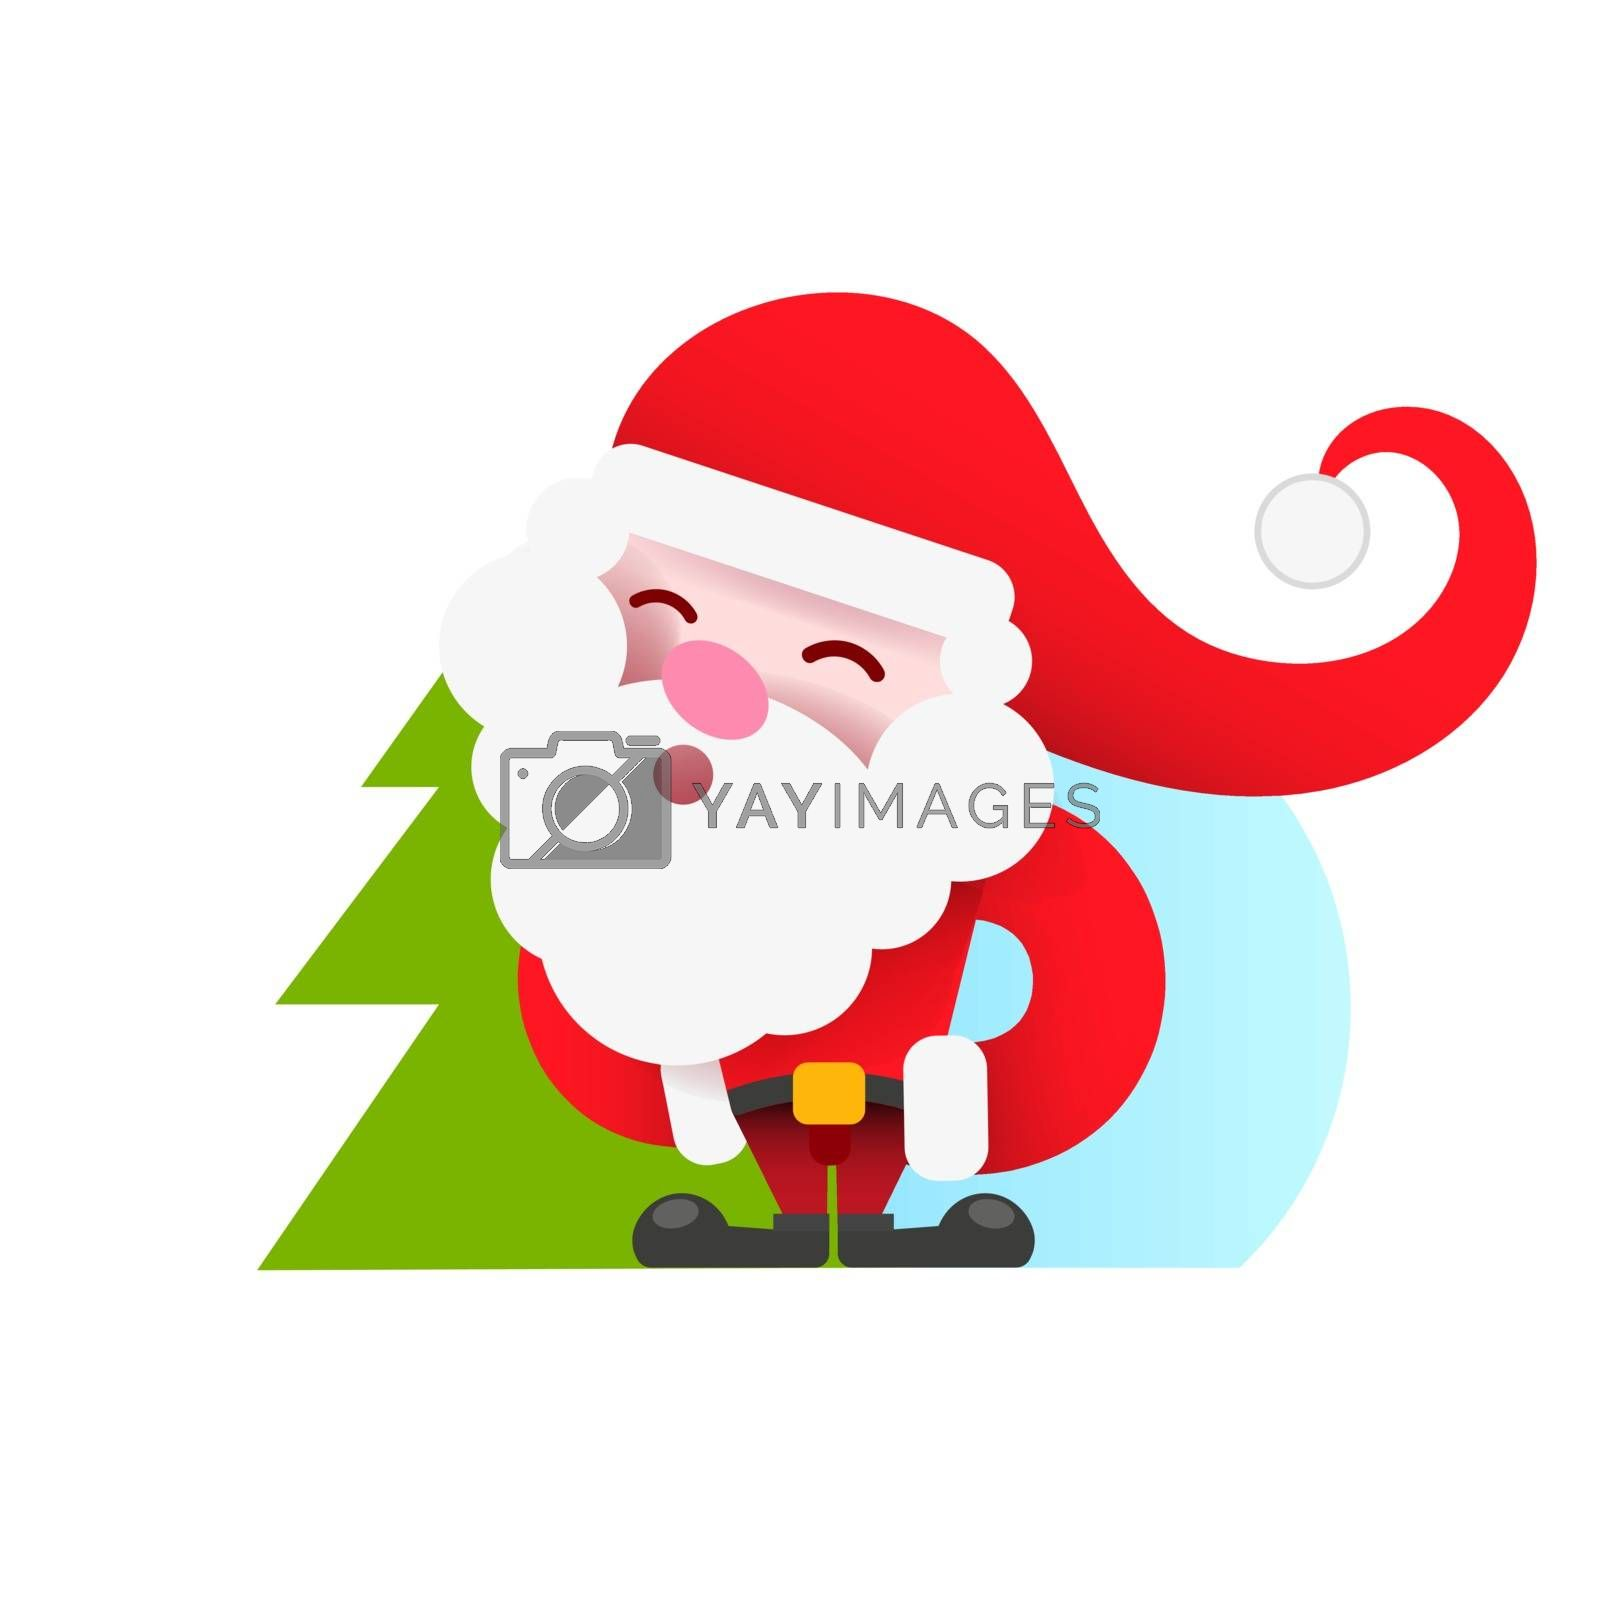 Vintage Santa logo for your design and needs. Vector illustration. by brylov